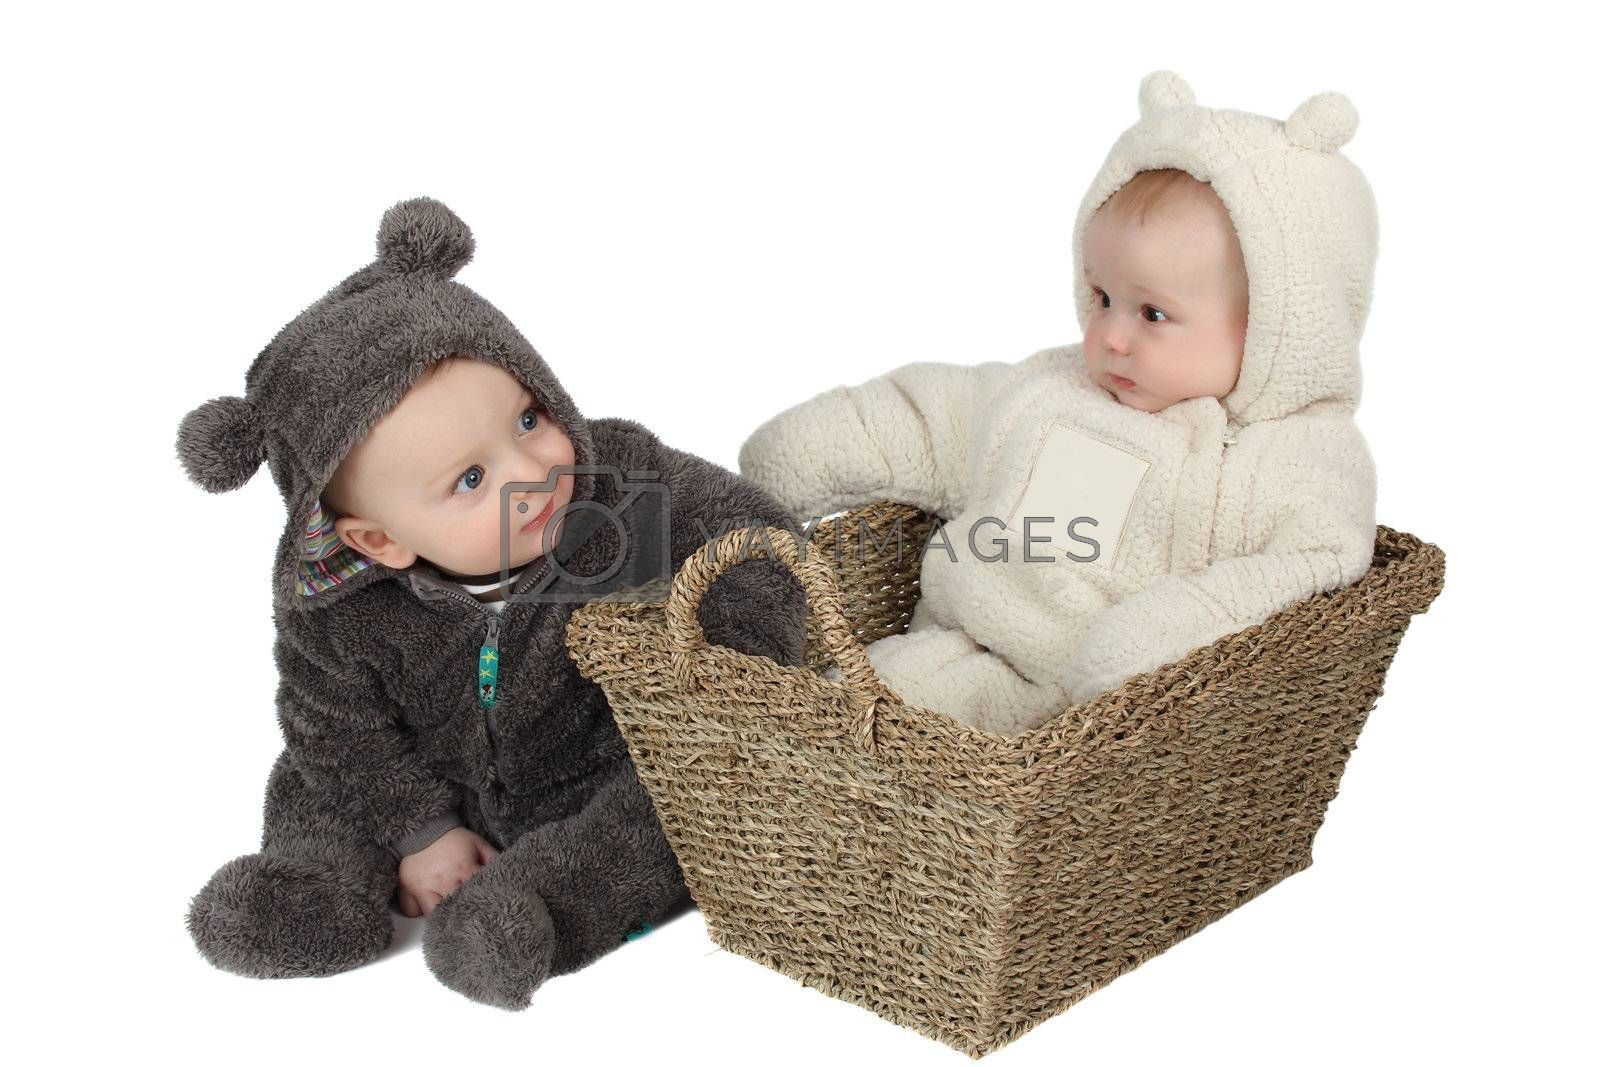 Two babies dressed in furry teddy bear suits